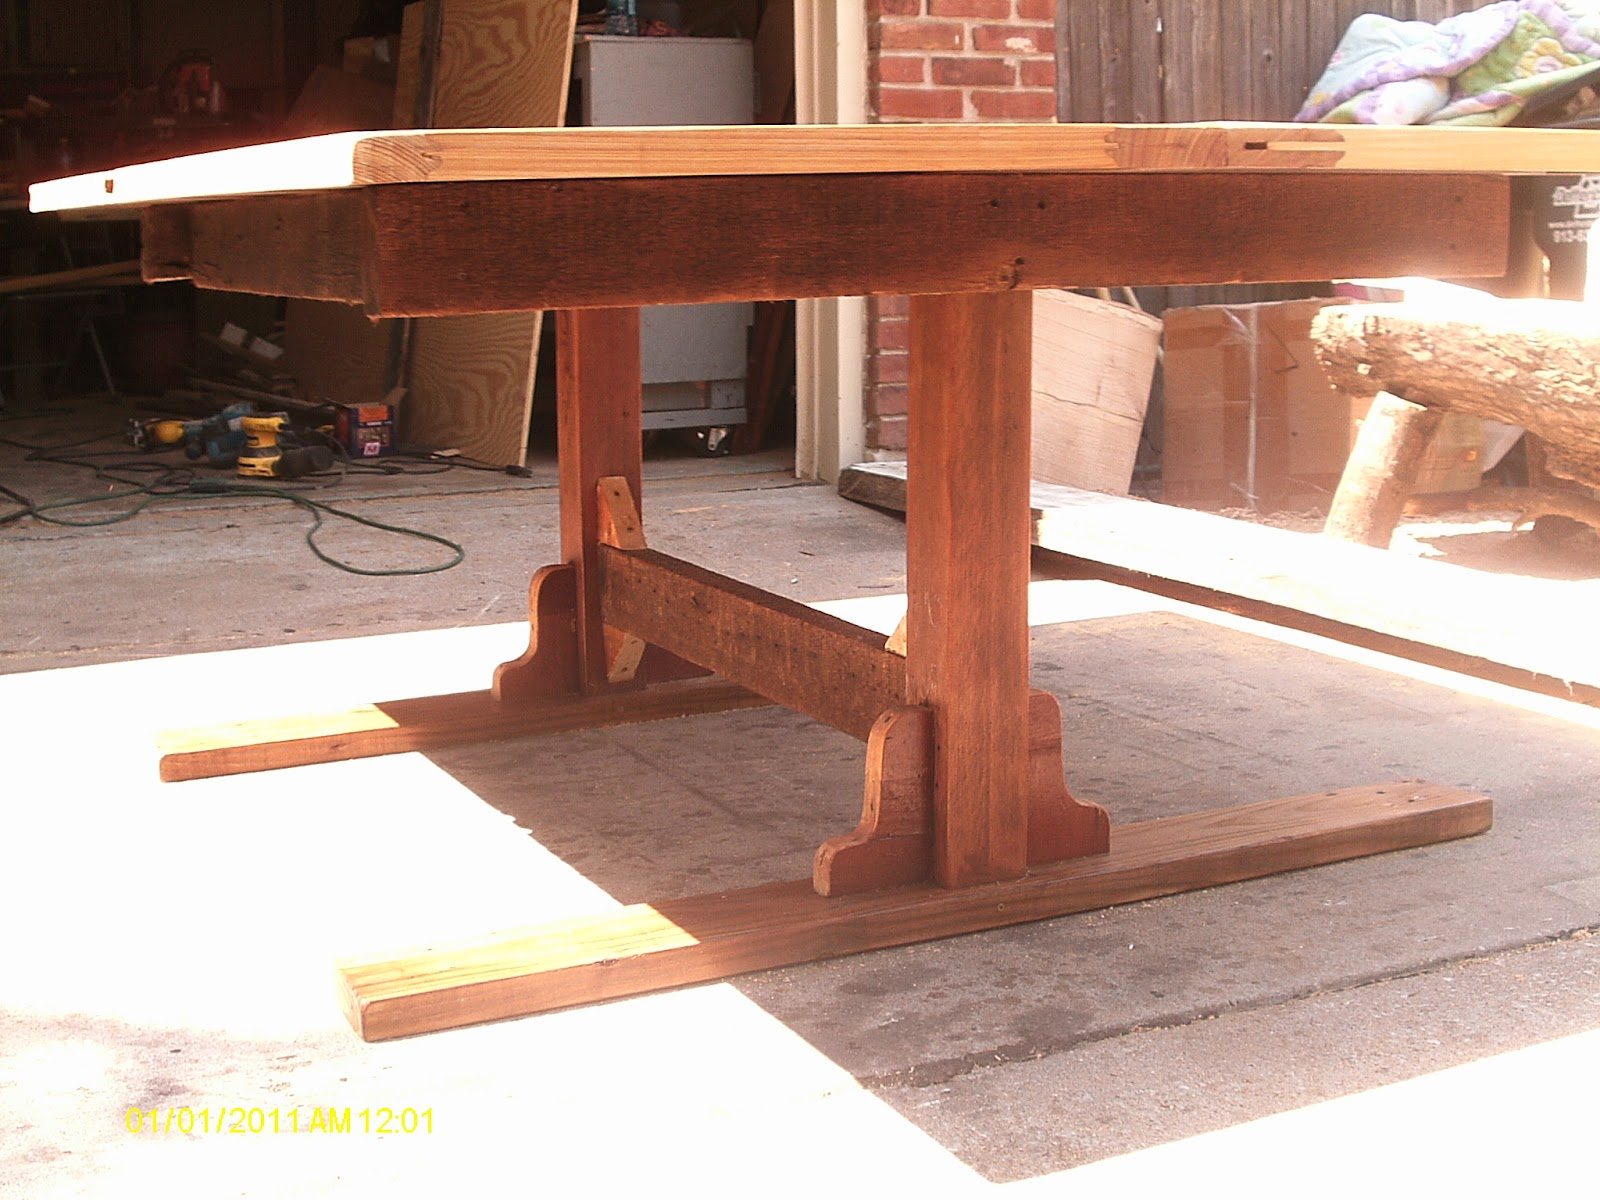 Dining table made from old door - I Had A Customer Bring Me Two Old Mahogany Doors And Ask That They Be Made Into A Dining Table For Them I First Made The Legs And Frame Under The Table